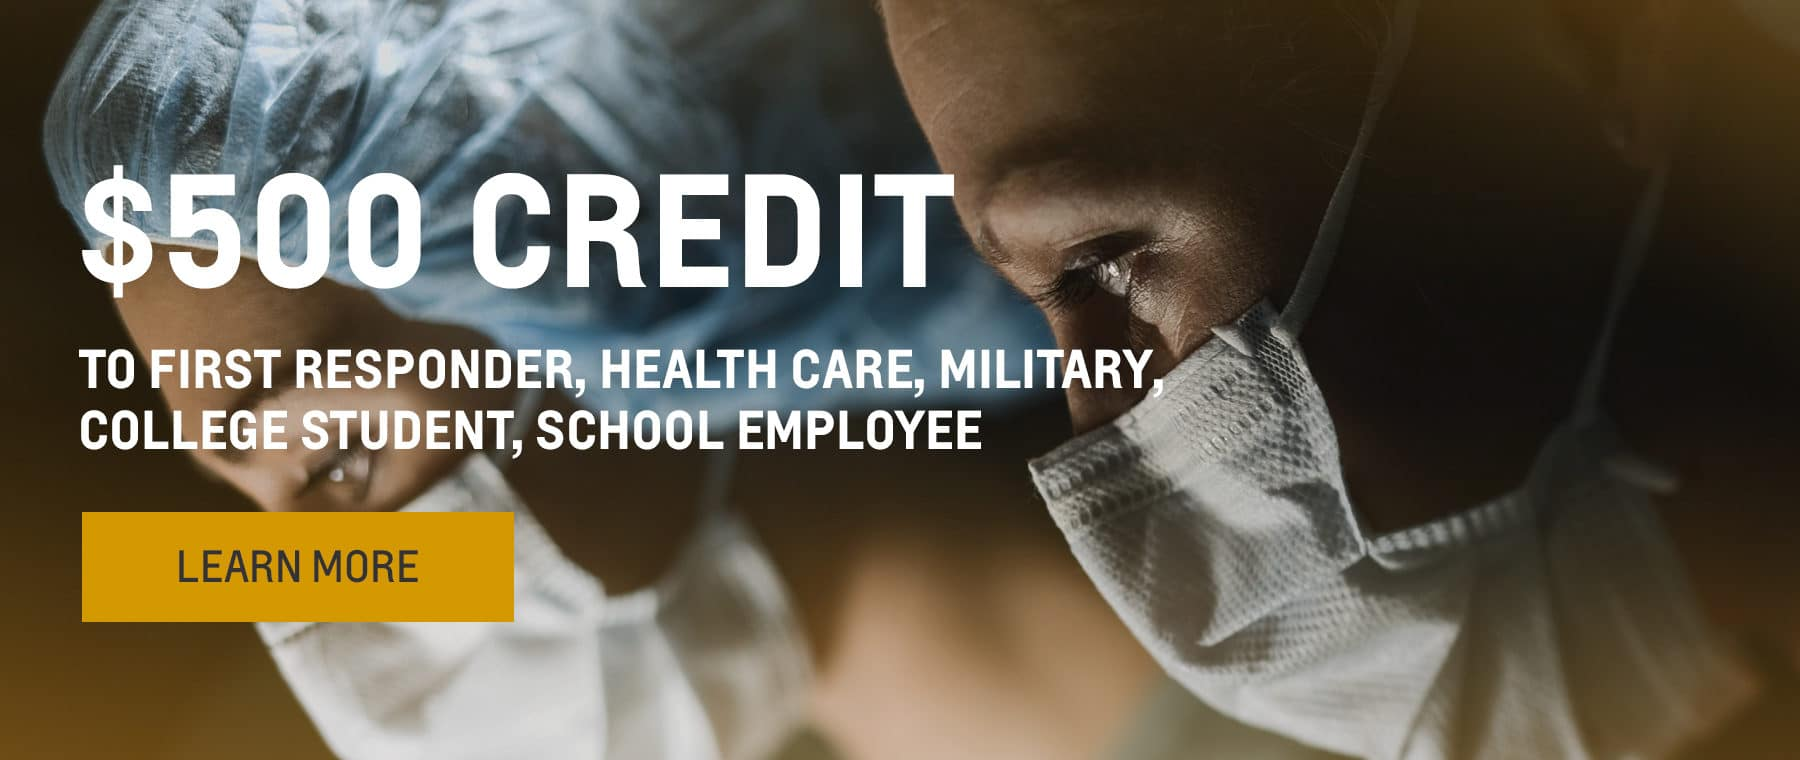 $500 credit to First Responder, Health Care, Military, College Student, School Employee